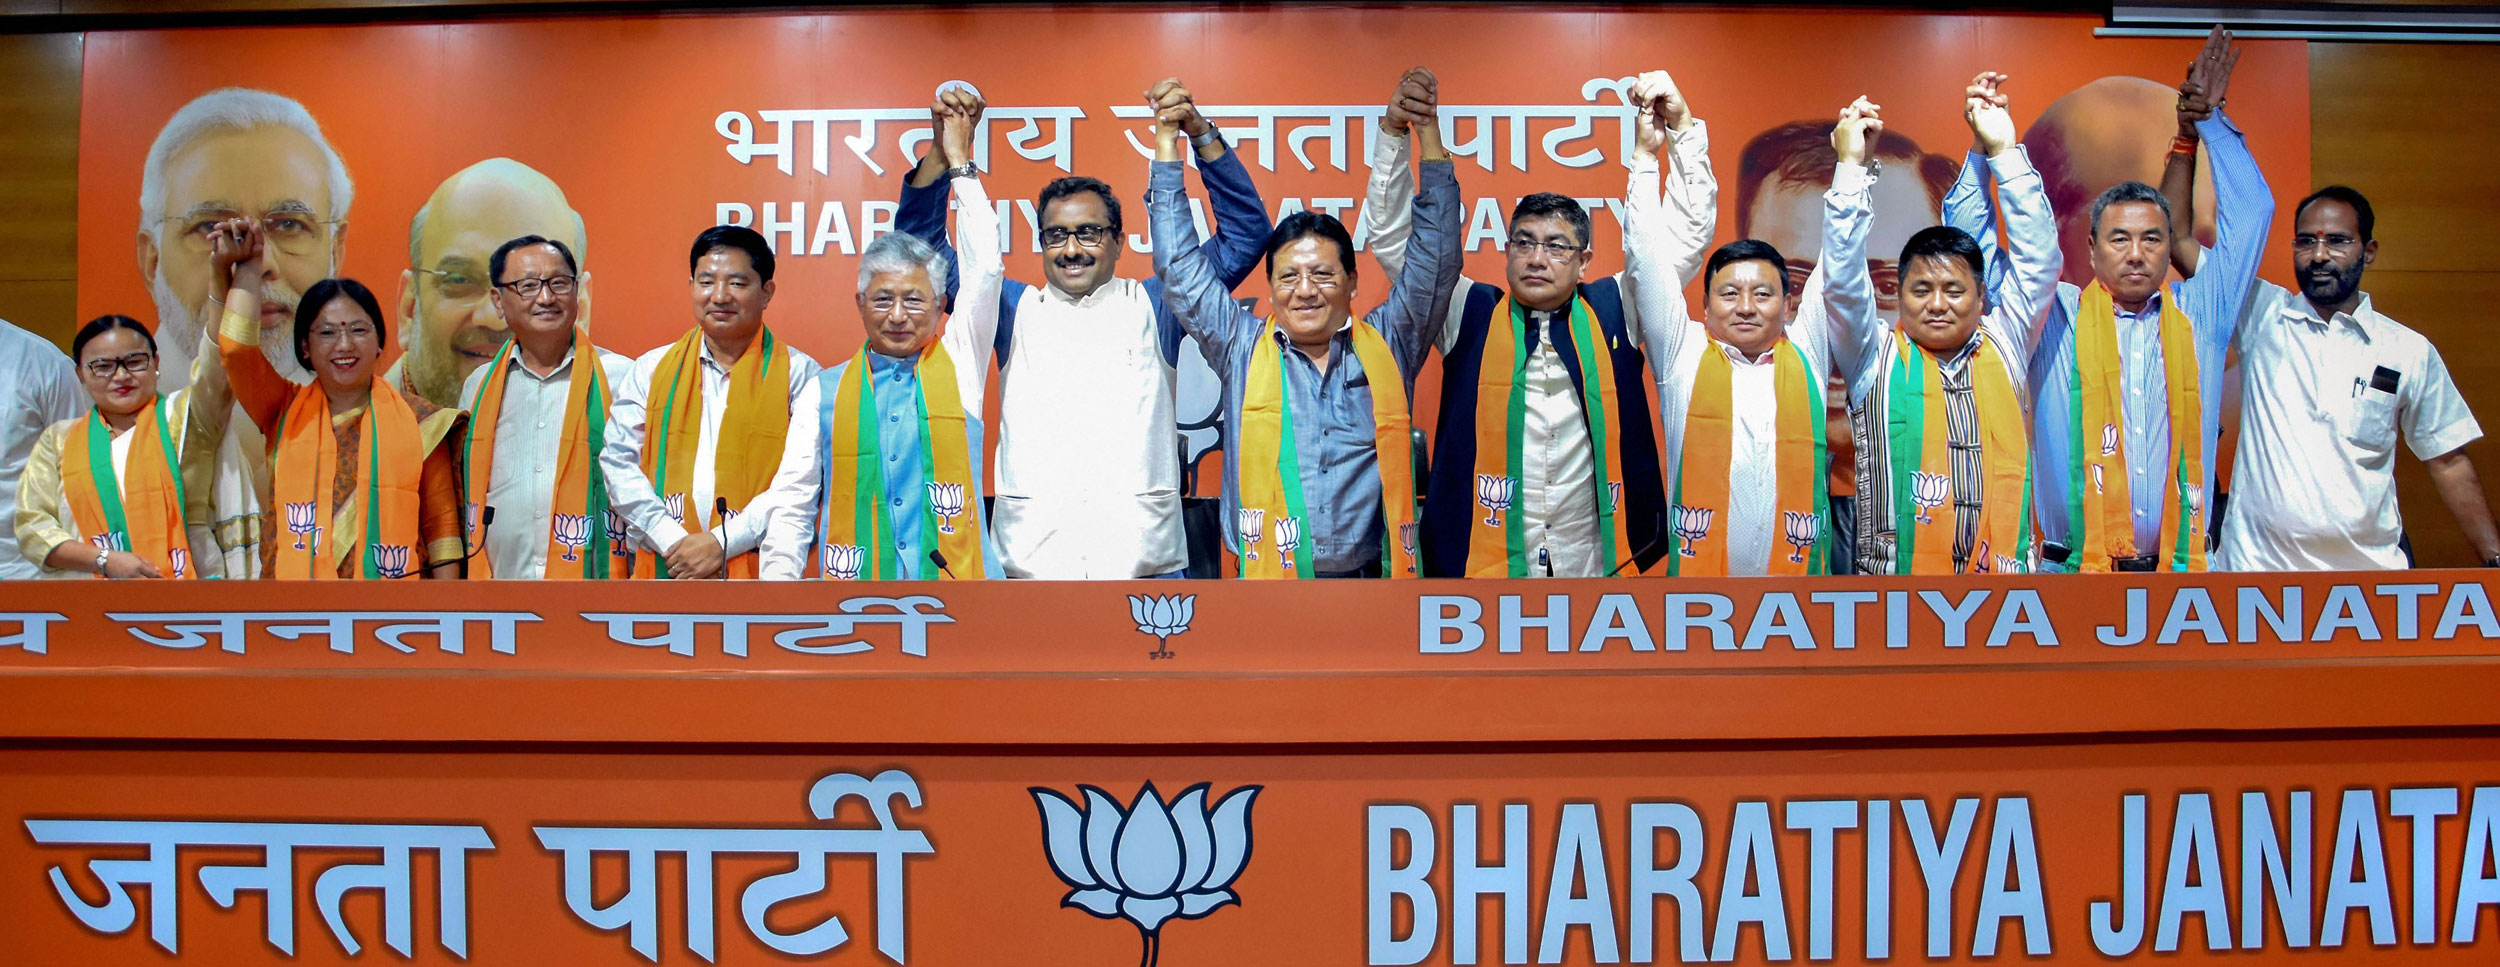 10 Sikkim Democratic Front MLAs join the BJP in presence of the party's national general secretary Ram Madhav in New Delhi on August 13, 2019.